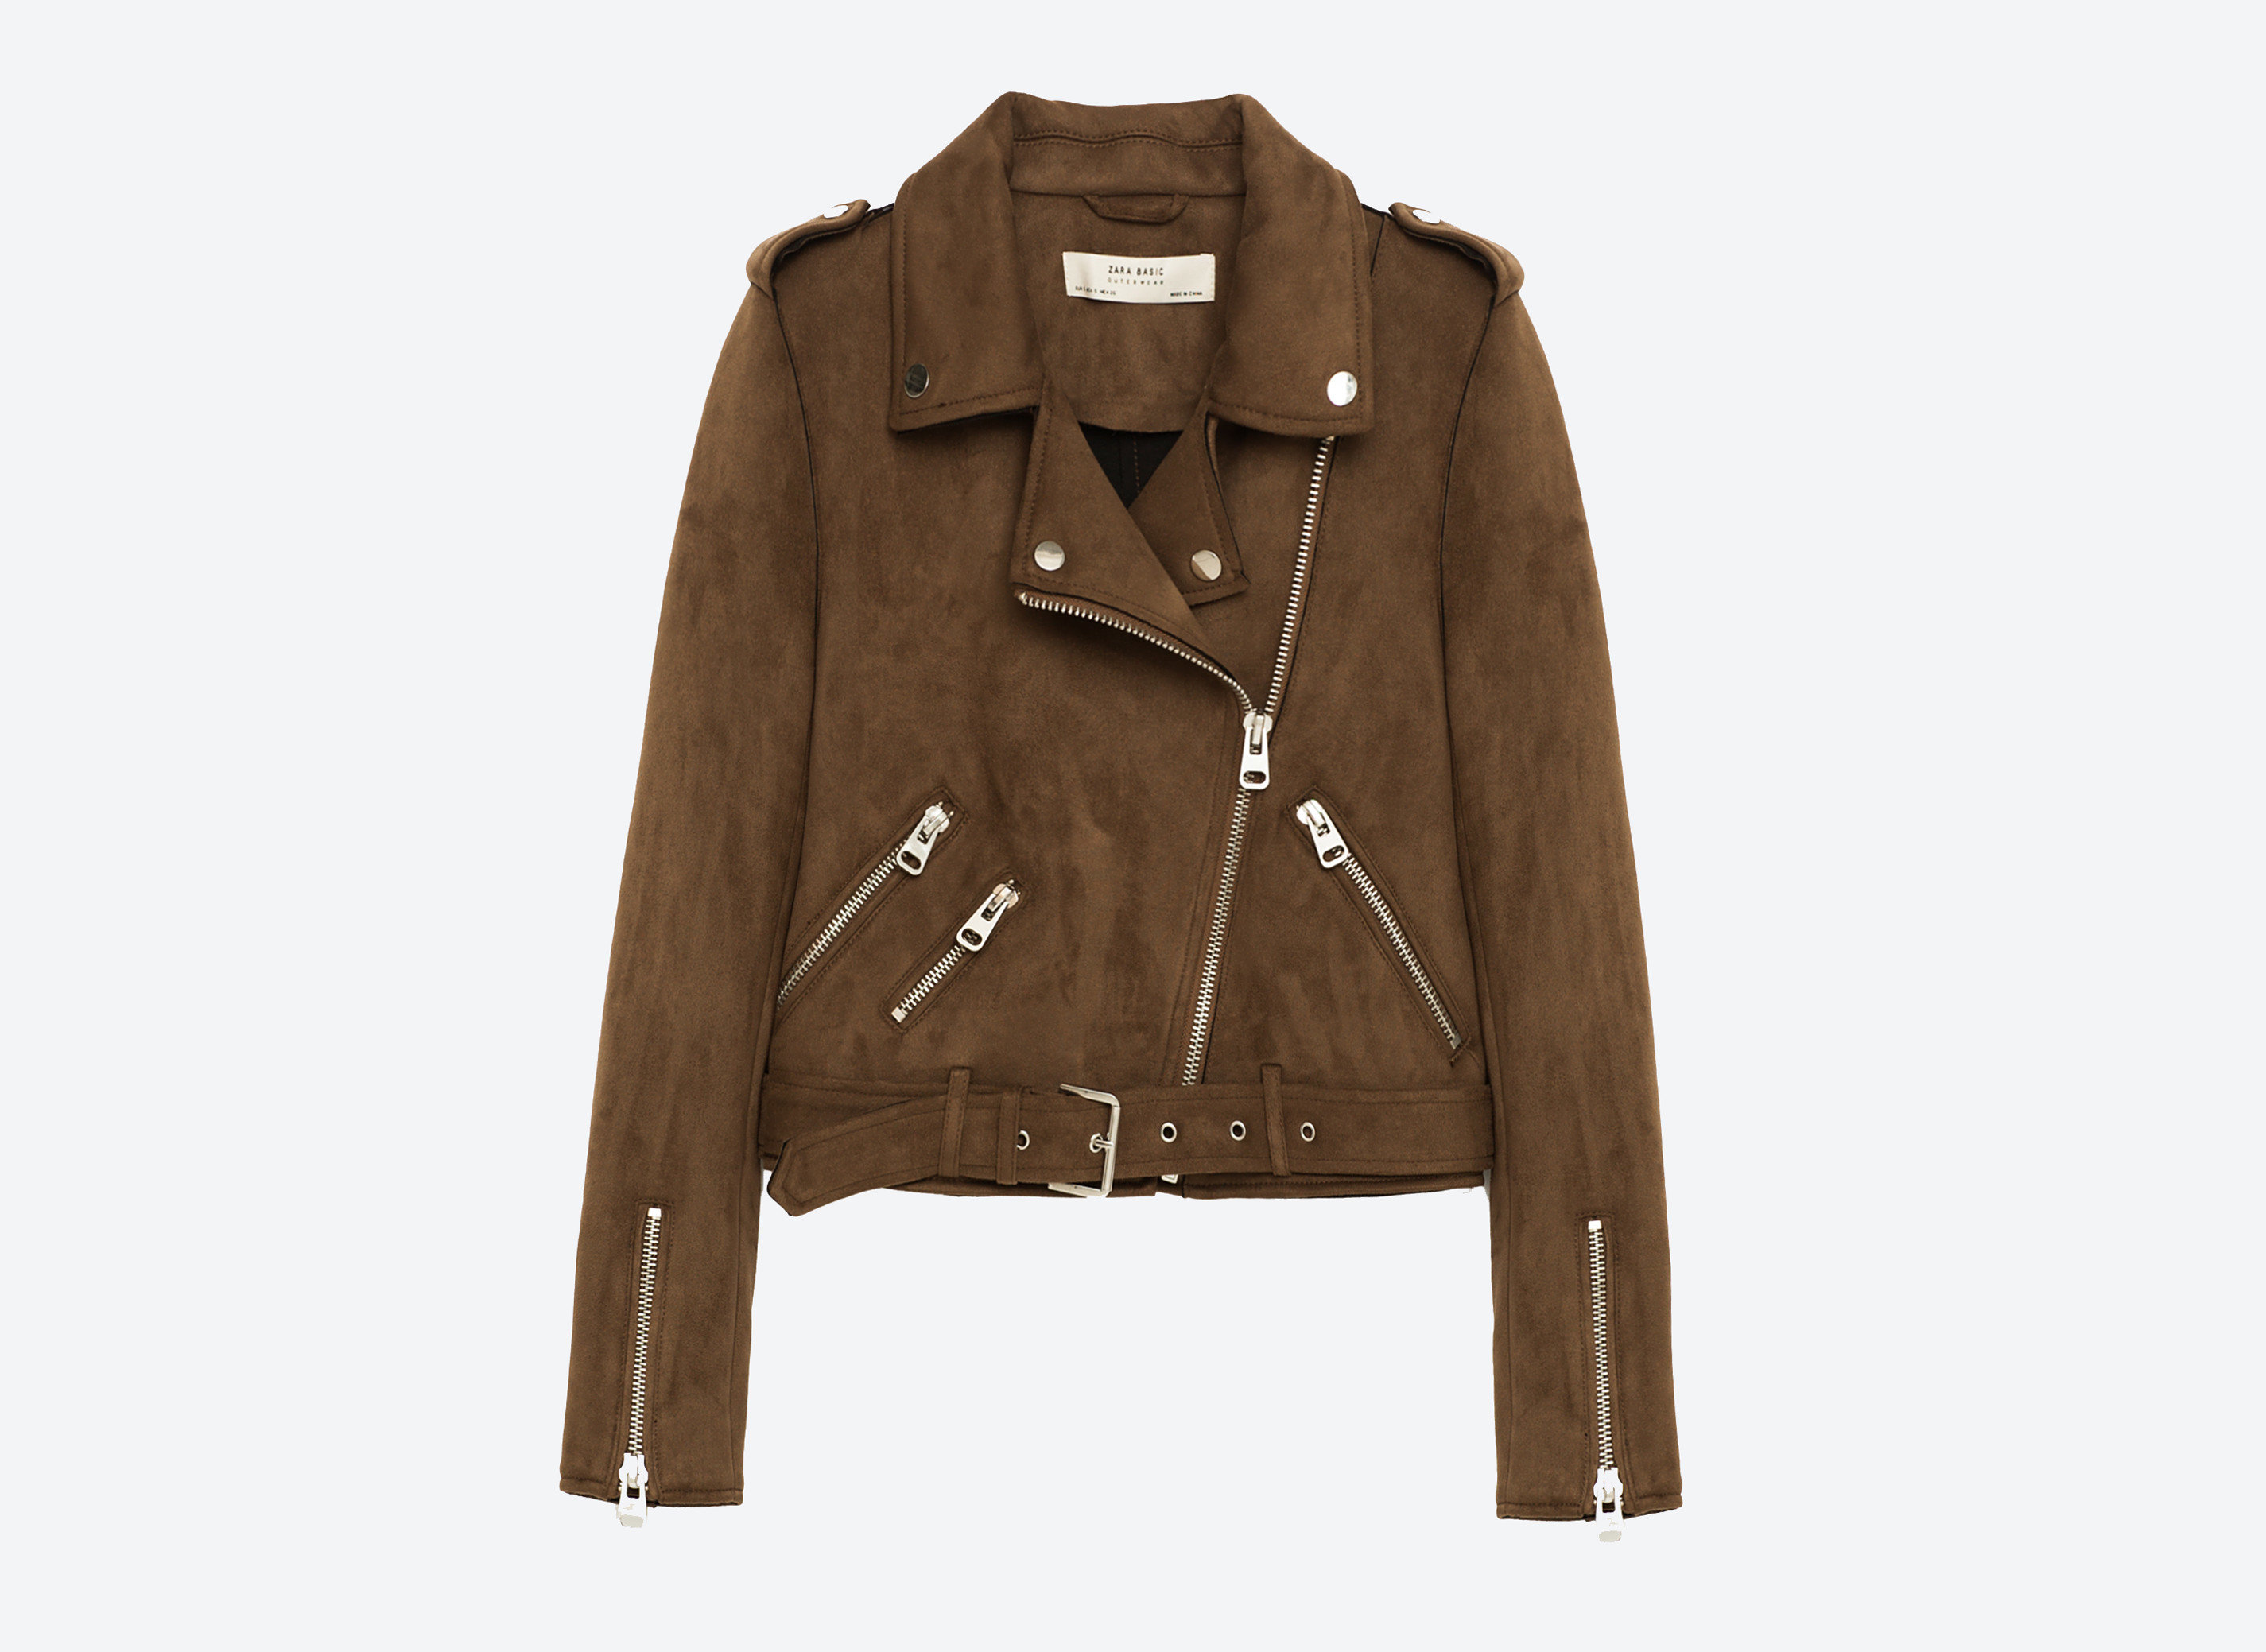 Offbeat suit clothing jacket man brown leather person wearing leather jacket outerwear posing textile sleeve beige pocket coat material